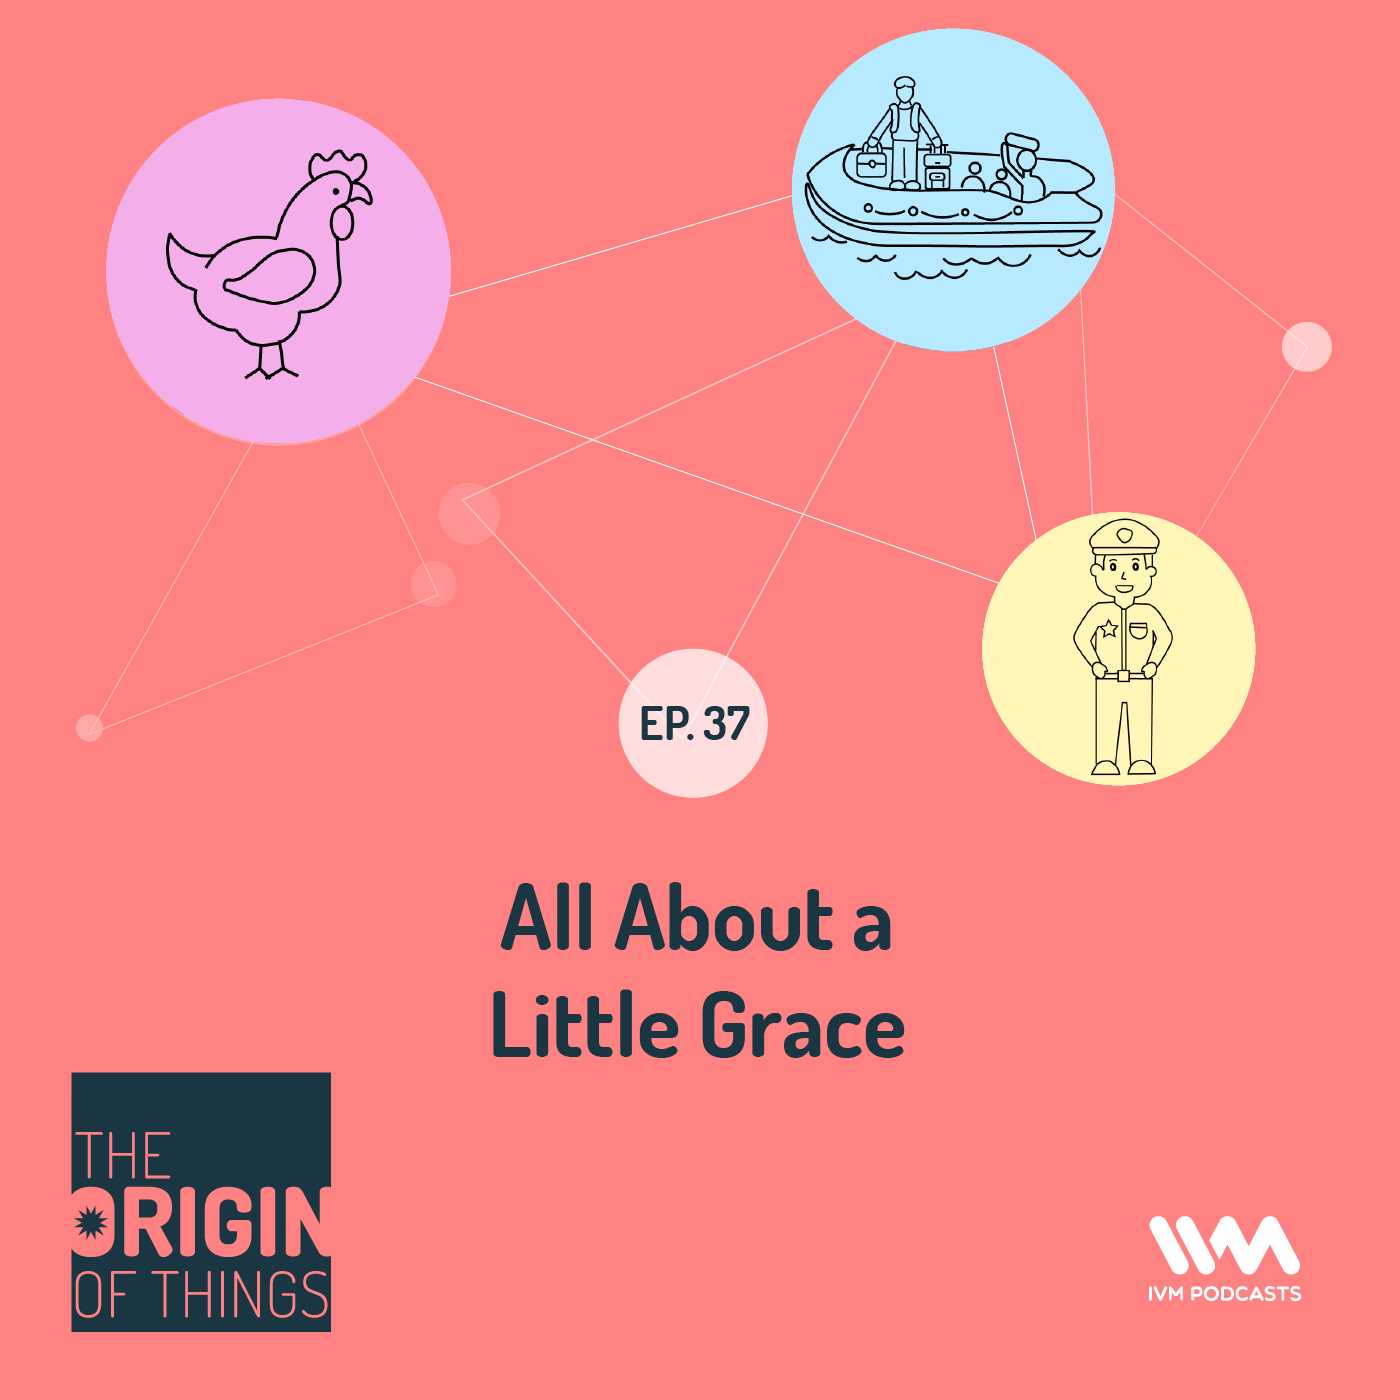 Ep. 37: All About a Little Grace